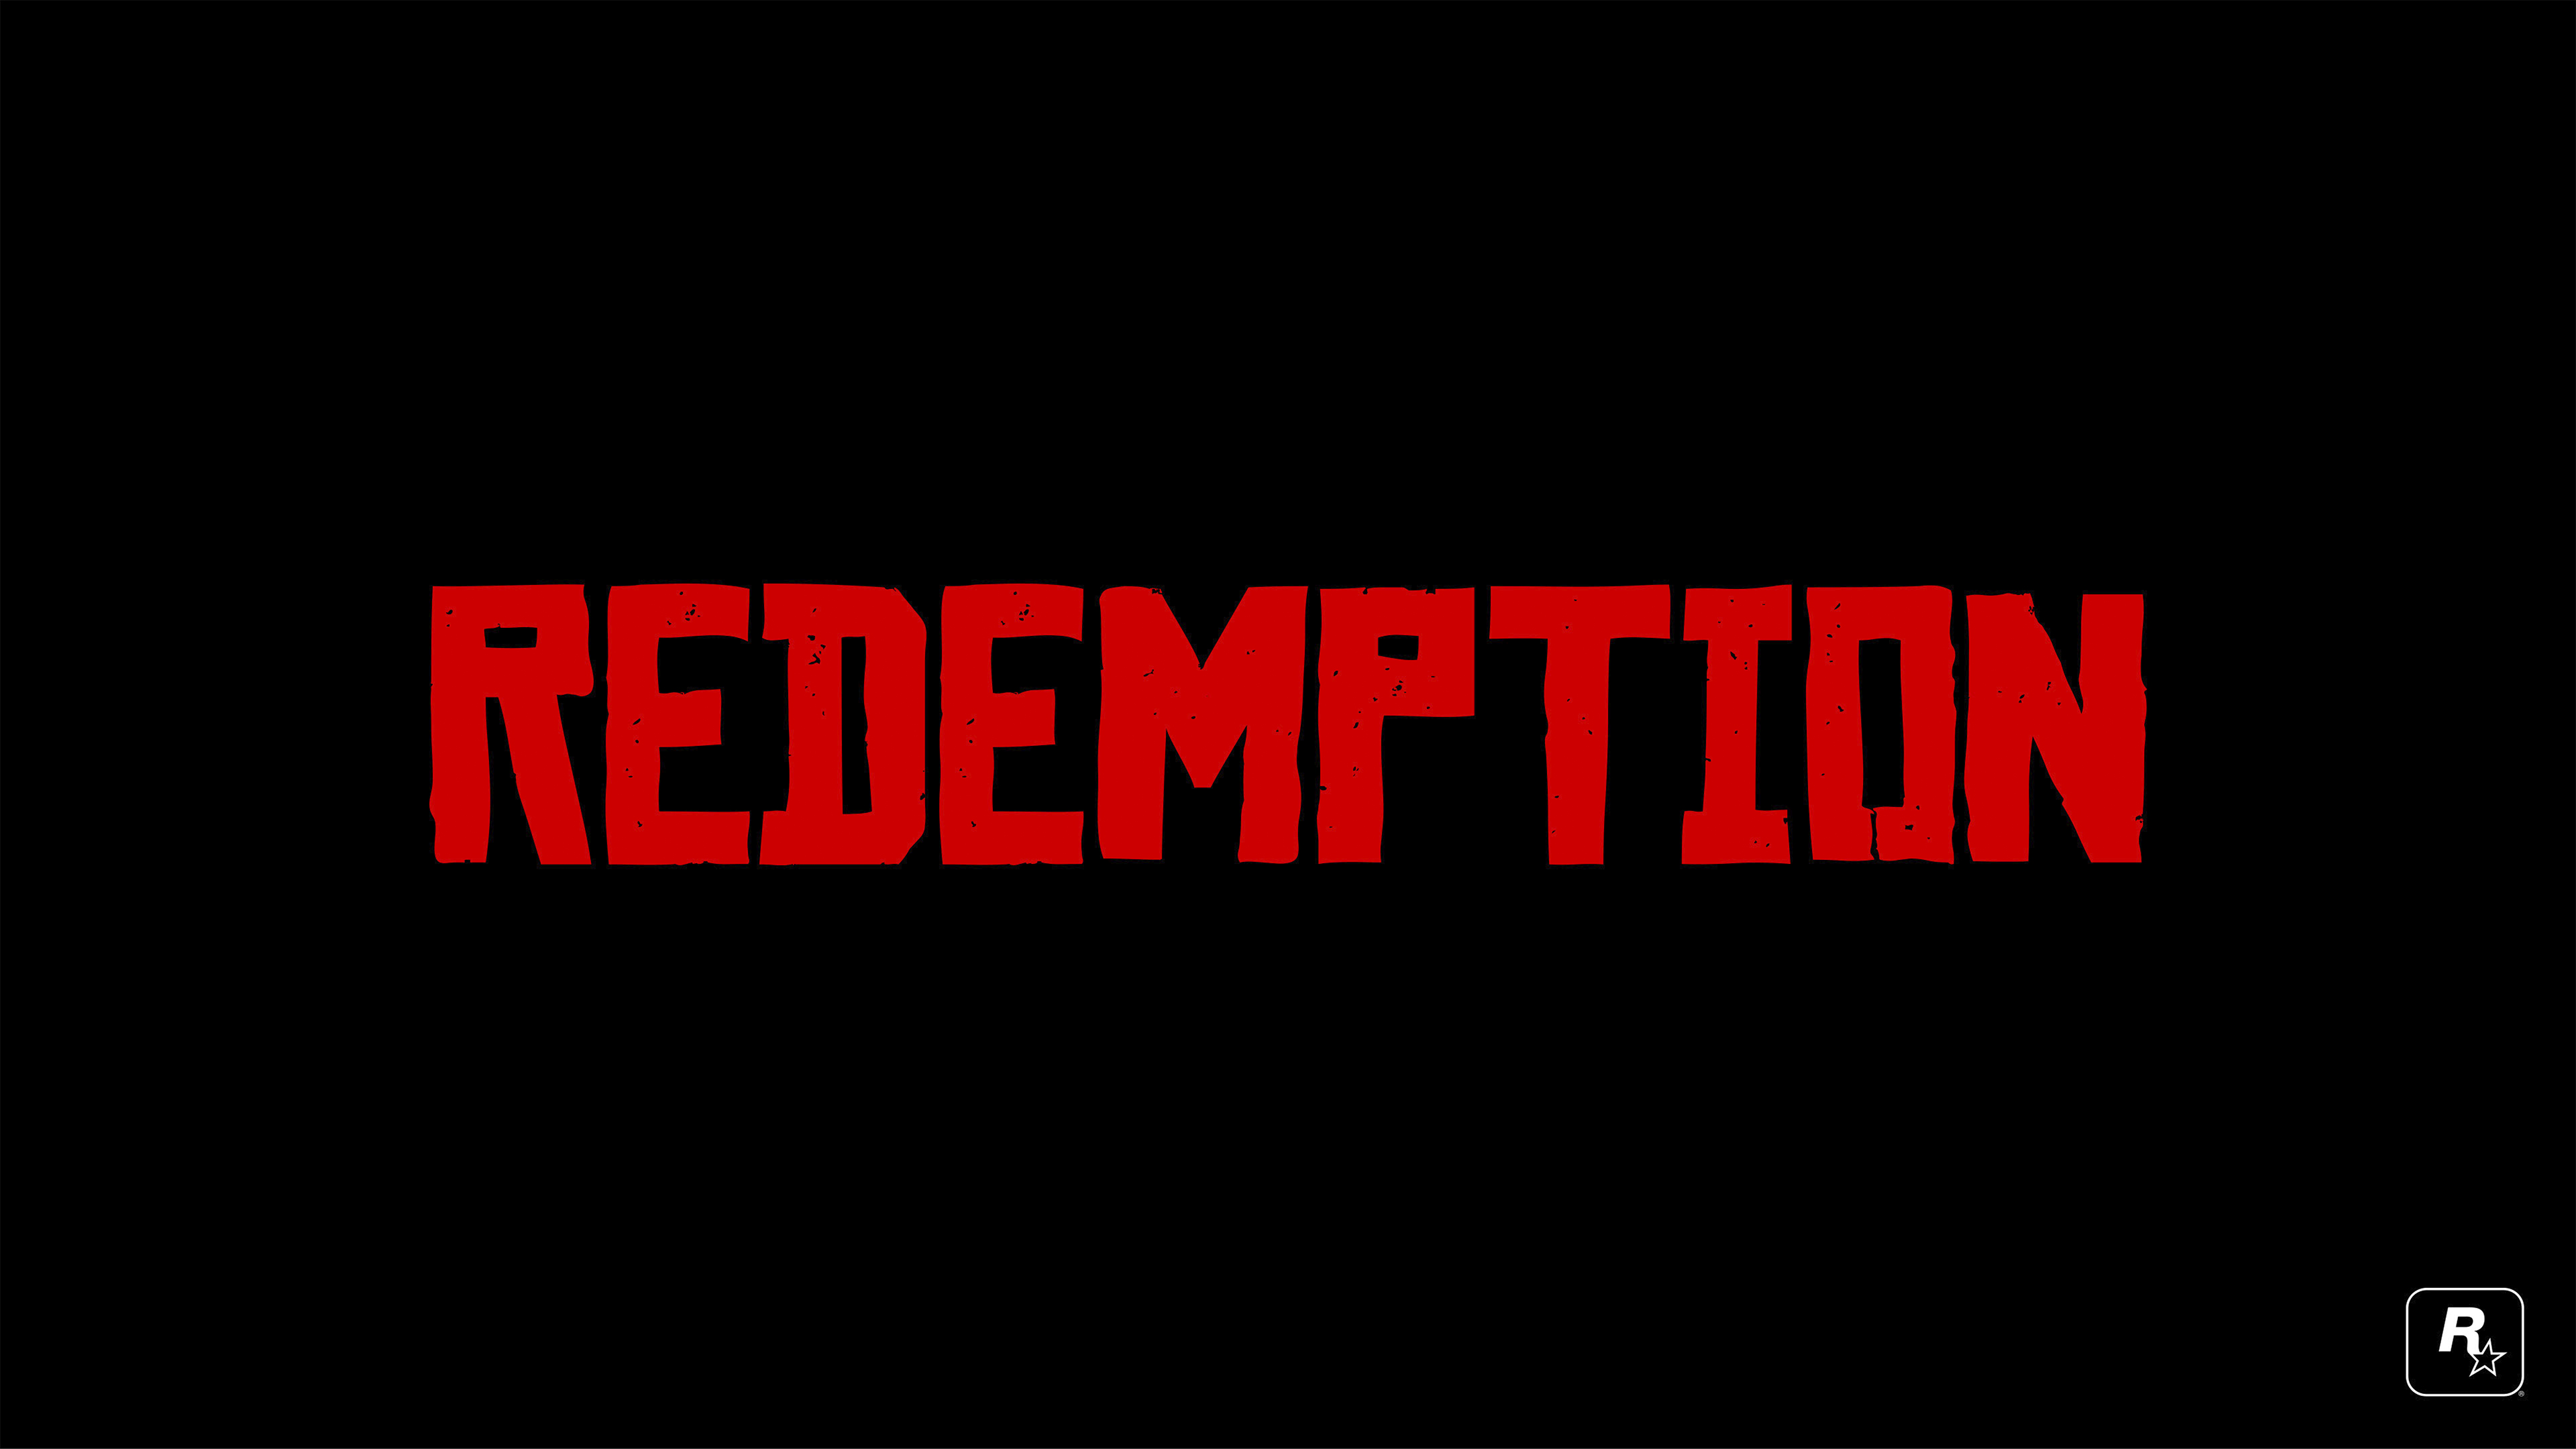 1440x2960 Red Dead Redemption 2 Logo 4k Samsung Galaxy Note 9 8 S9 S8 S8 Qhd Hd 4k Wallpapers Images Backgrounds Photos And Pictures